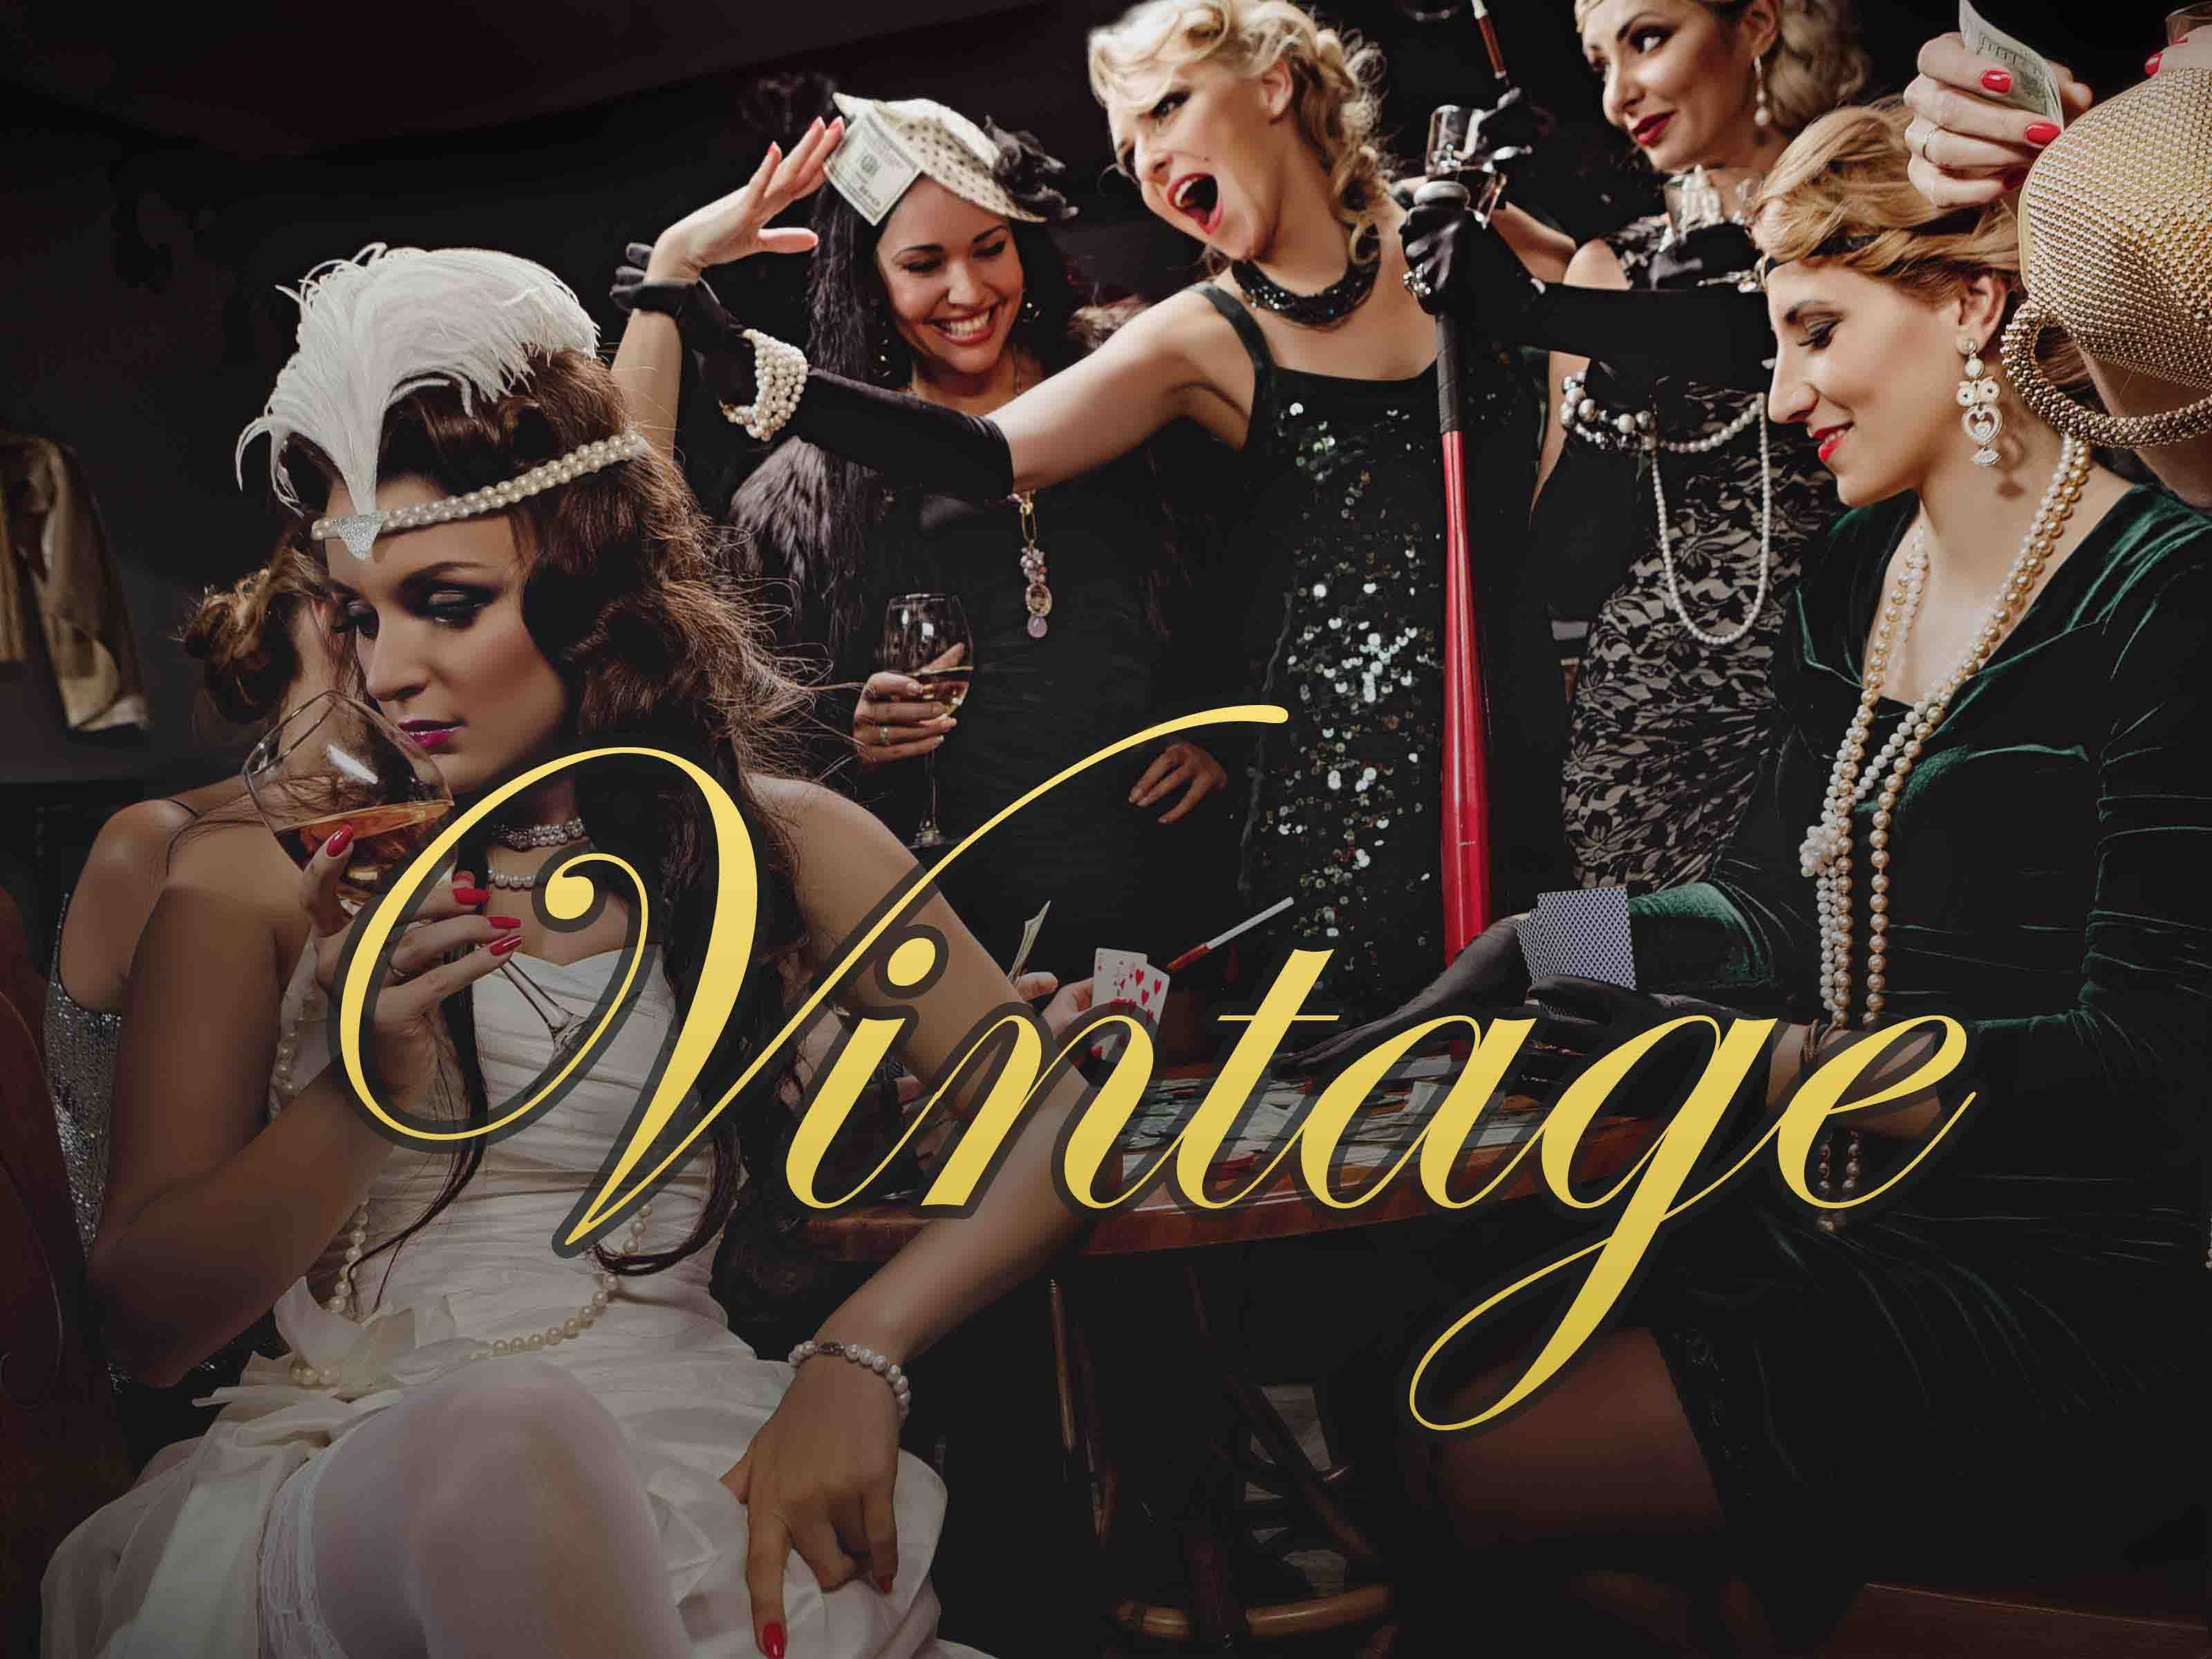 Hen Party Themes - Vintage